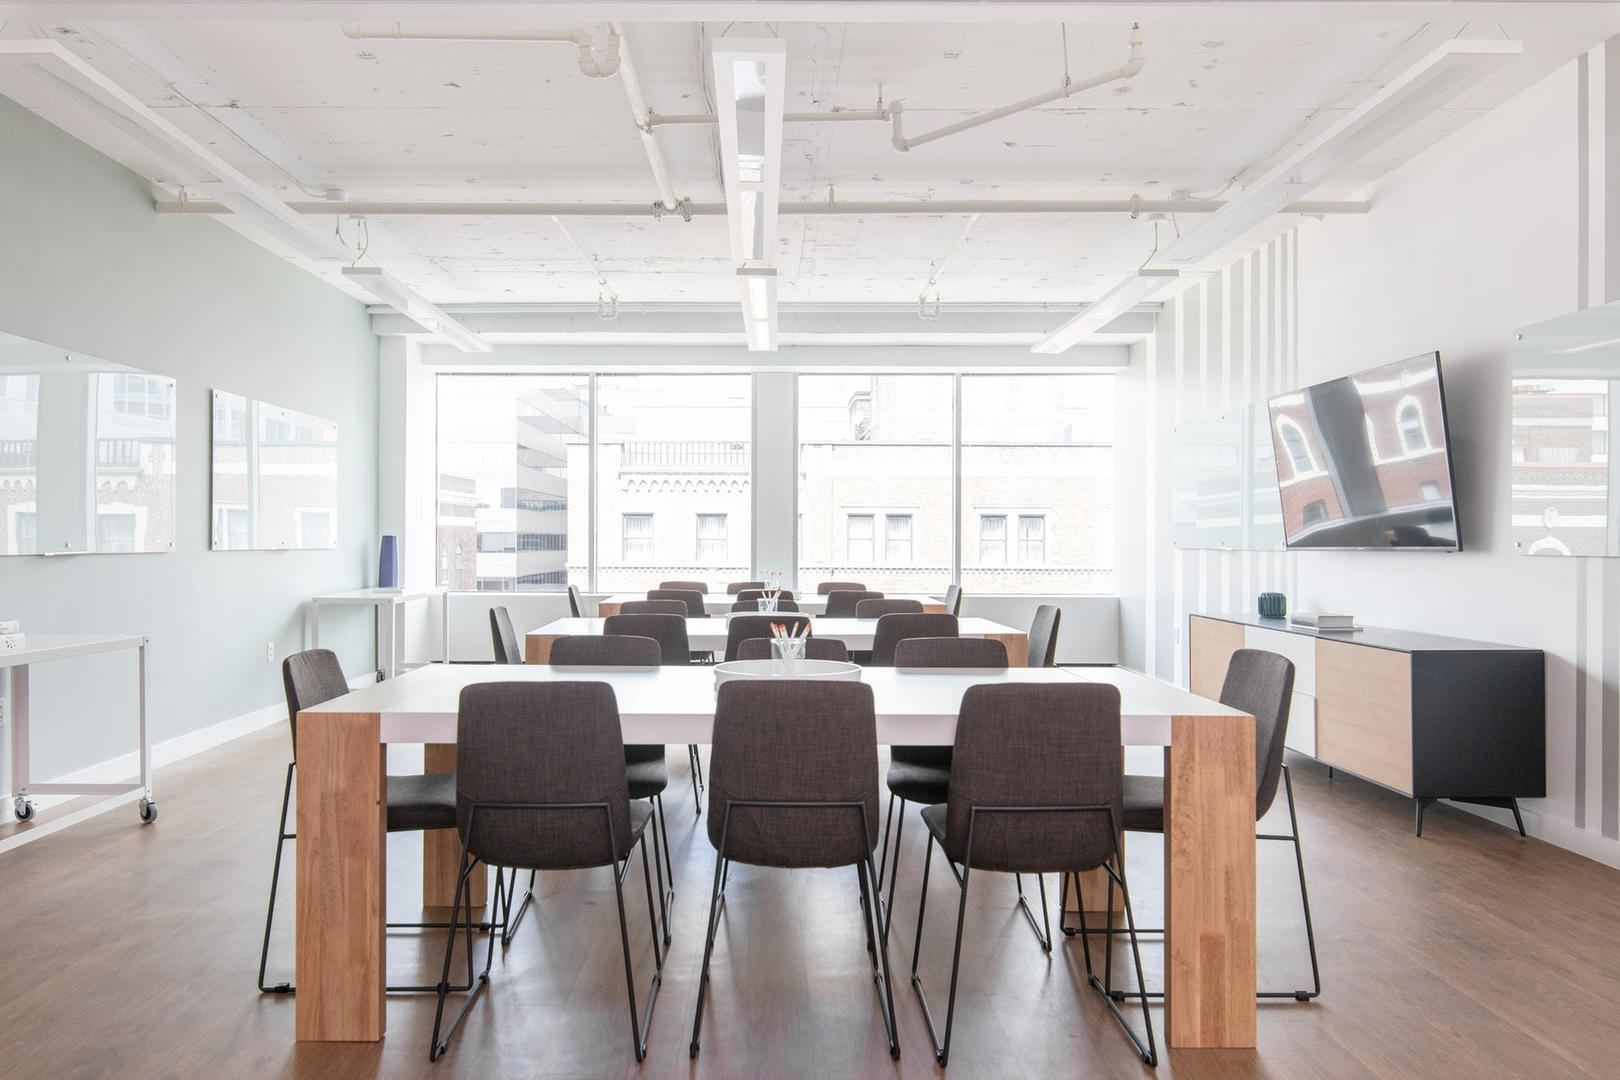 space at Modern, Bright Meeting Space on Capitol Hill